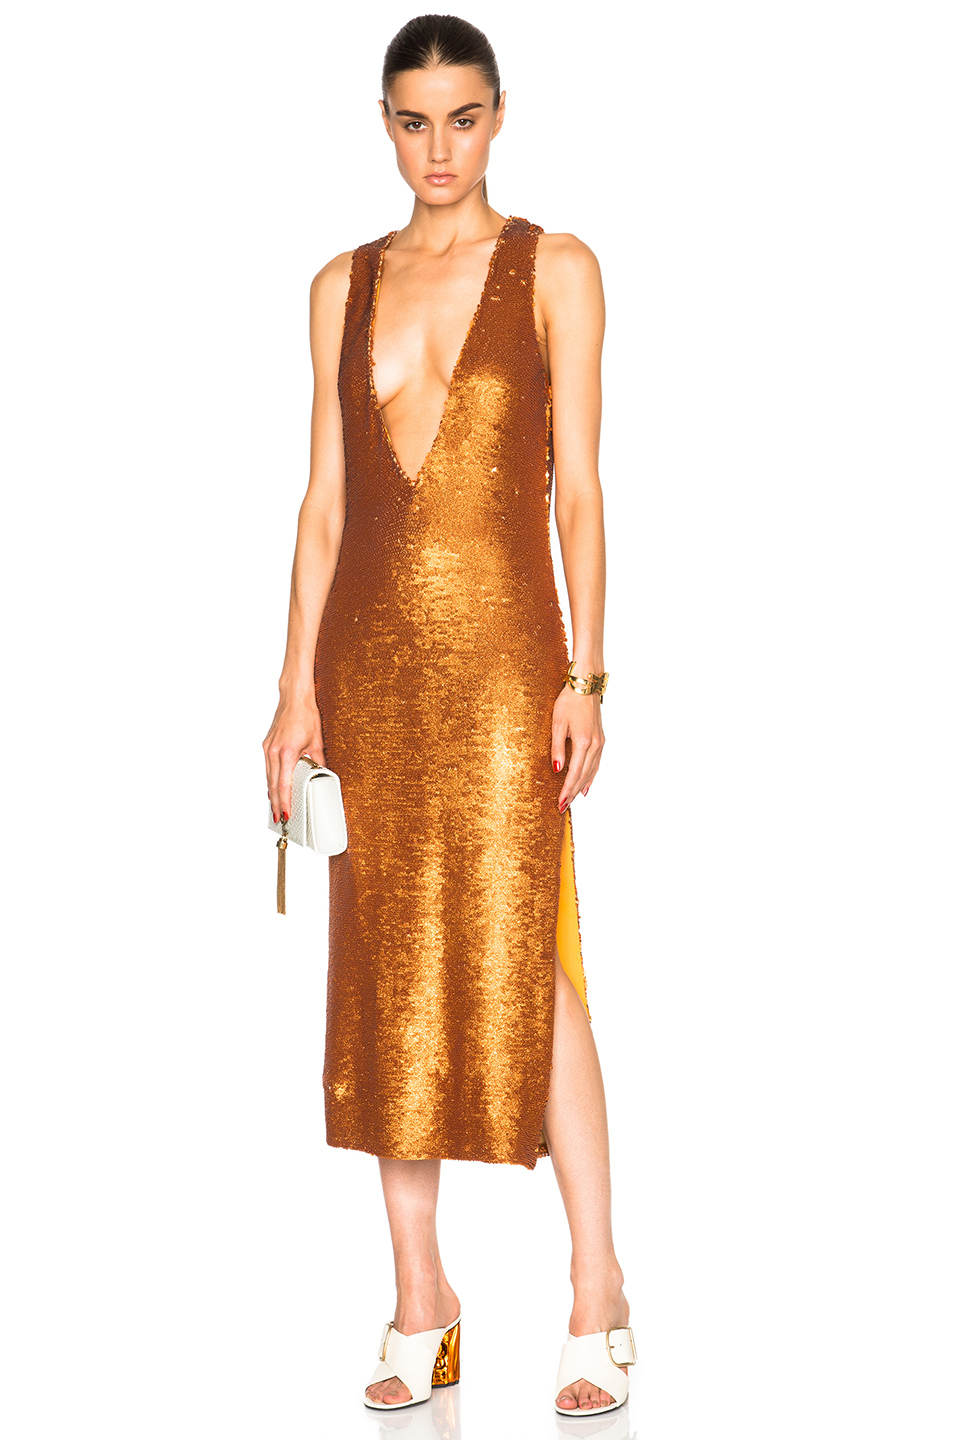 Prabal gurung dusted paillette embroidered dress in orange